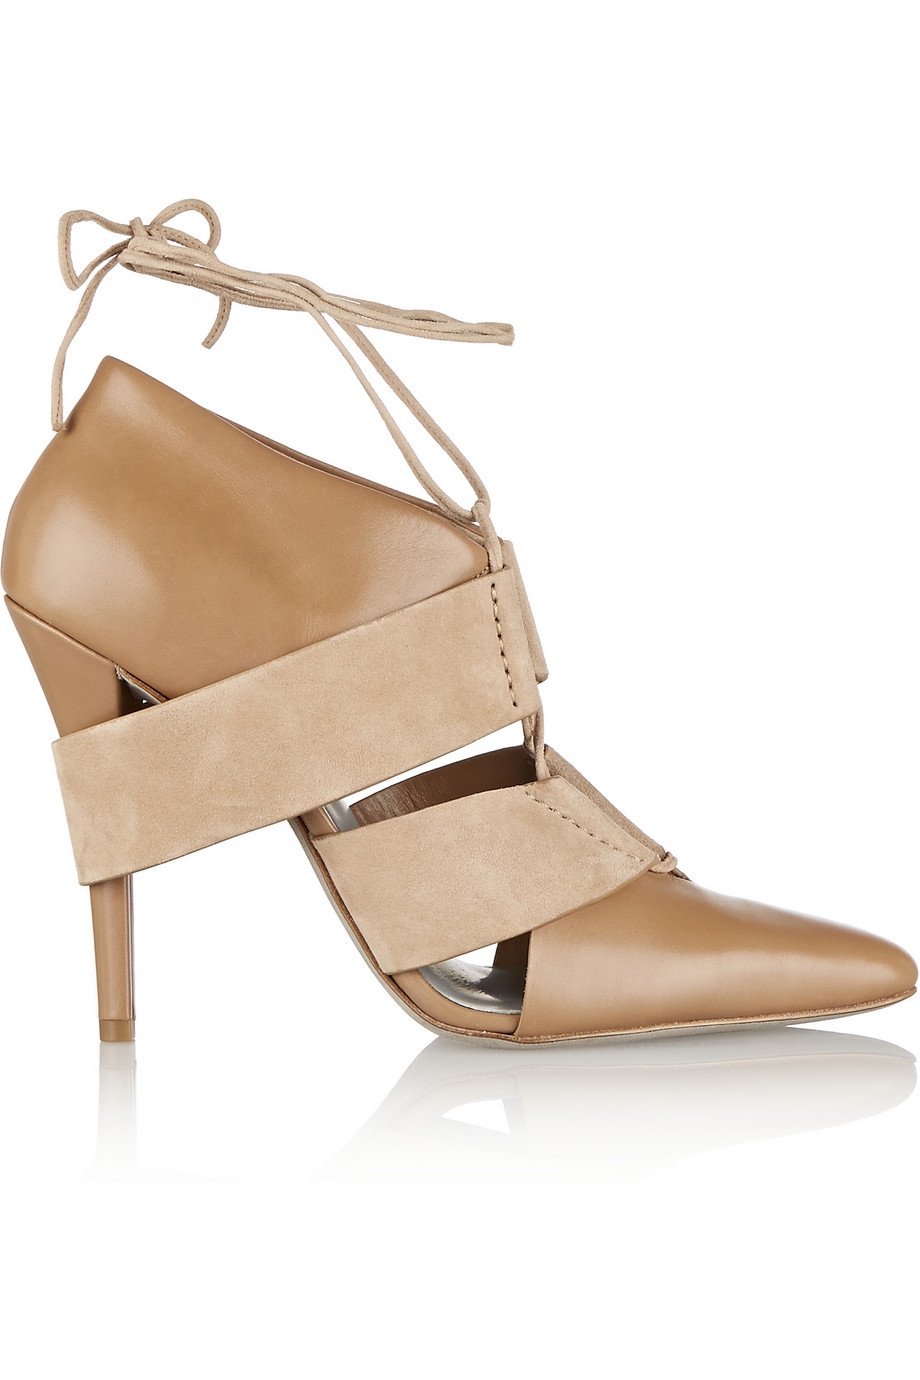 Alexander Wang Mila Leather and Suede Pumps $227.50